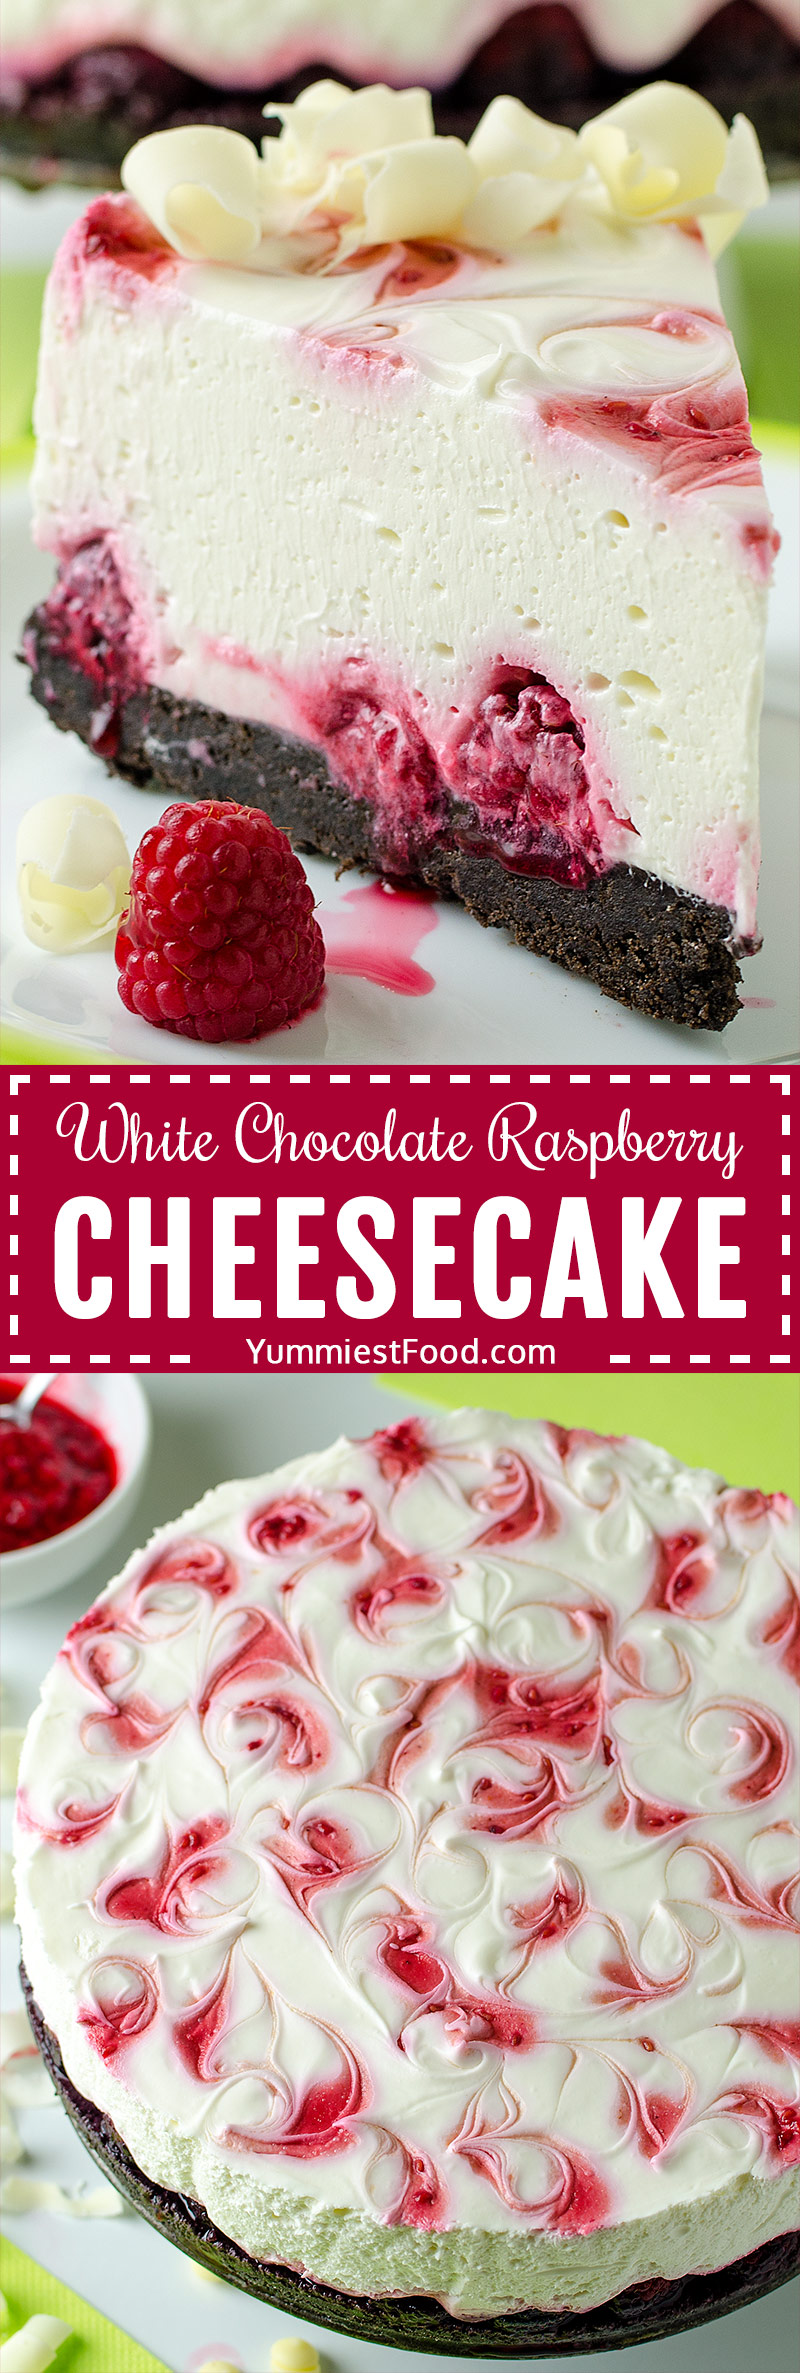 NO BAKE WHITE CHOCOLATE RASPBERRY CHEESECAKE – Creamy, smooth, rich cheesecake worthy of any occasion